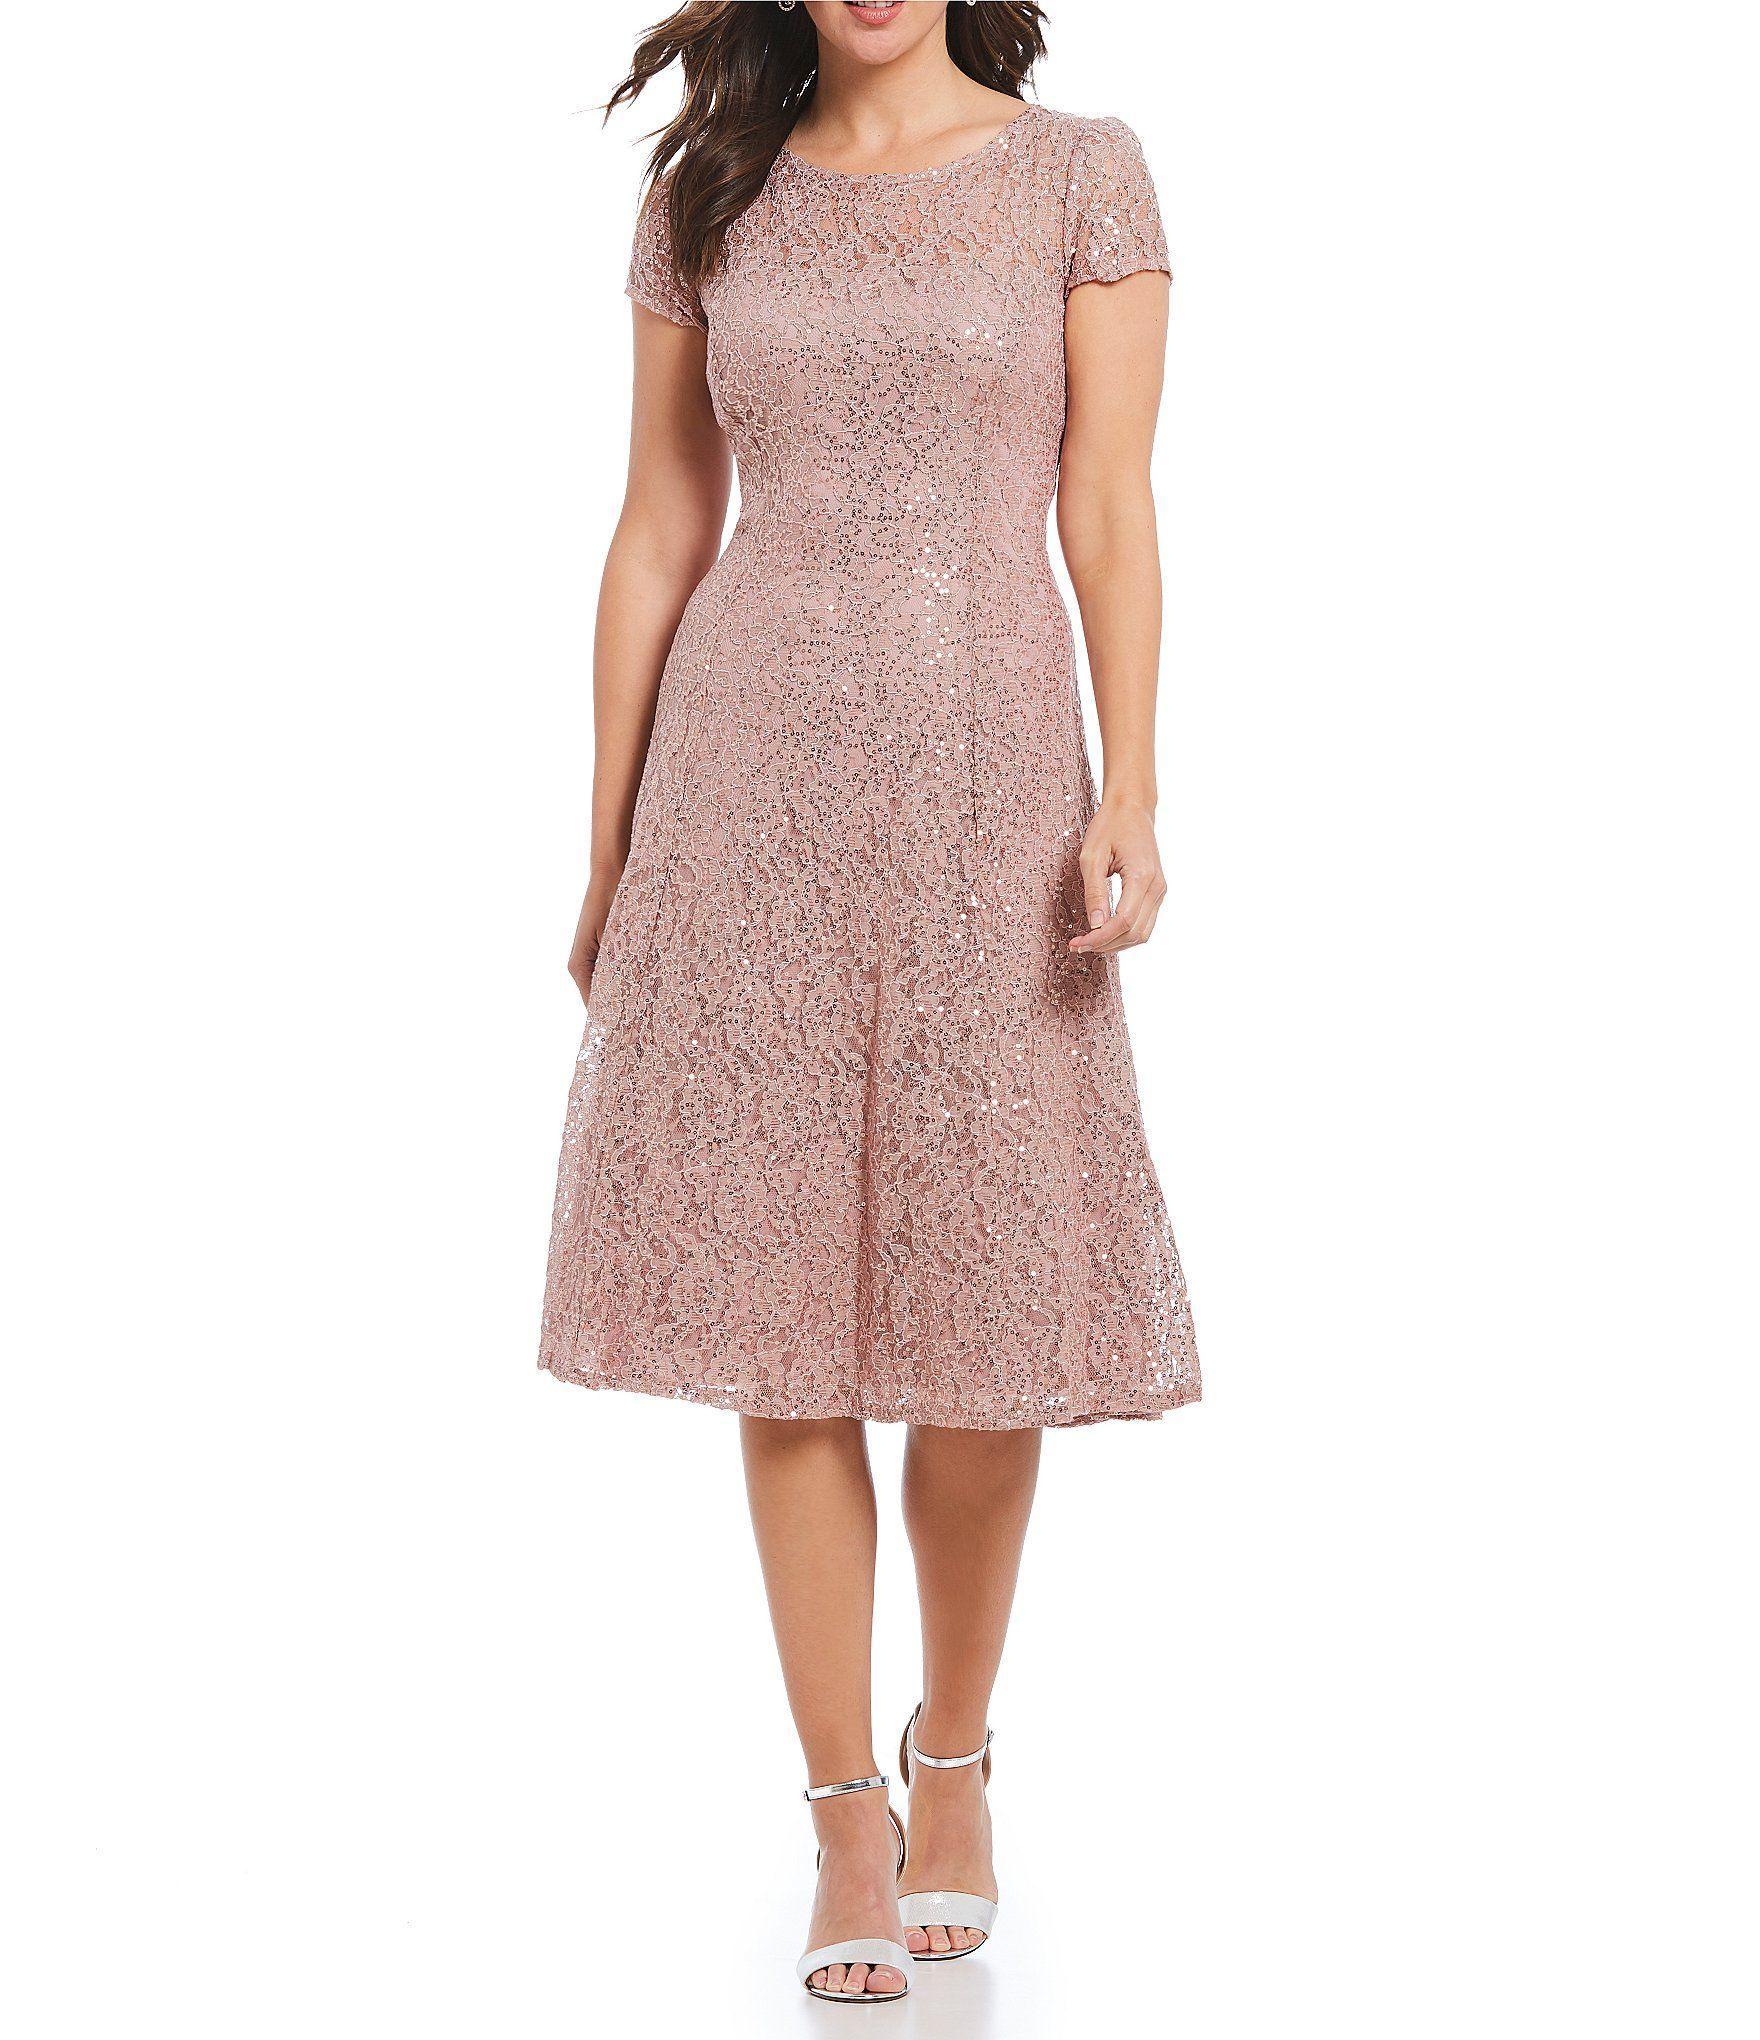 233e7359ff8 Shop for Ignite Evenings Cap Sleeve Sequin Lace Midi Dress at Dillards.com.  Visit Dillards.com to find clothing